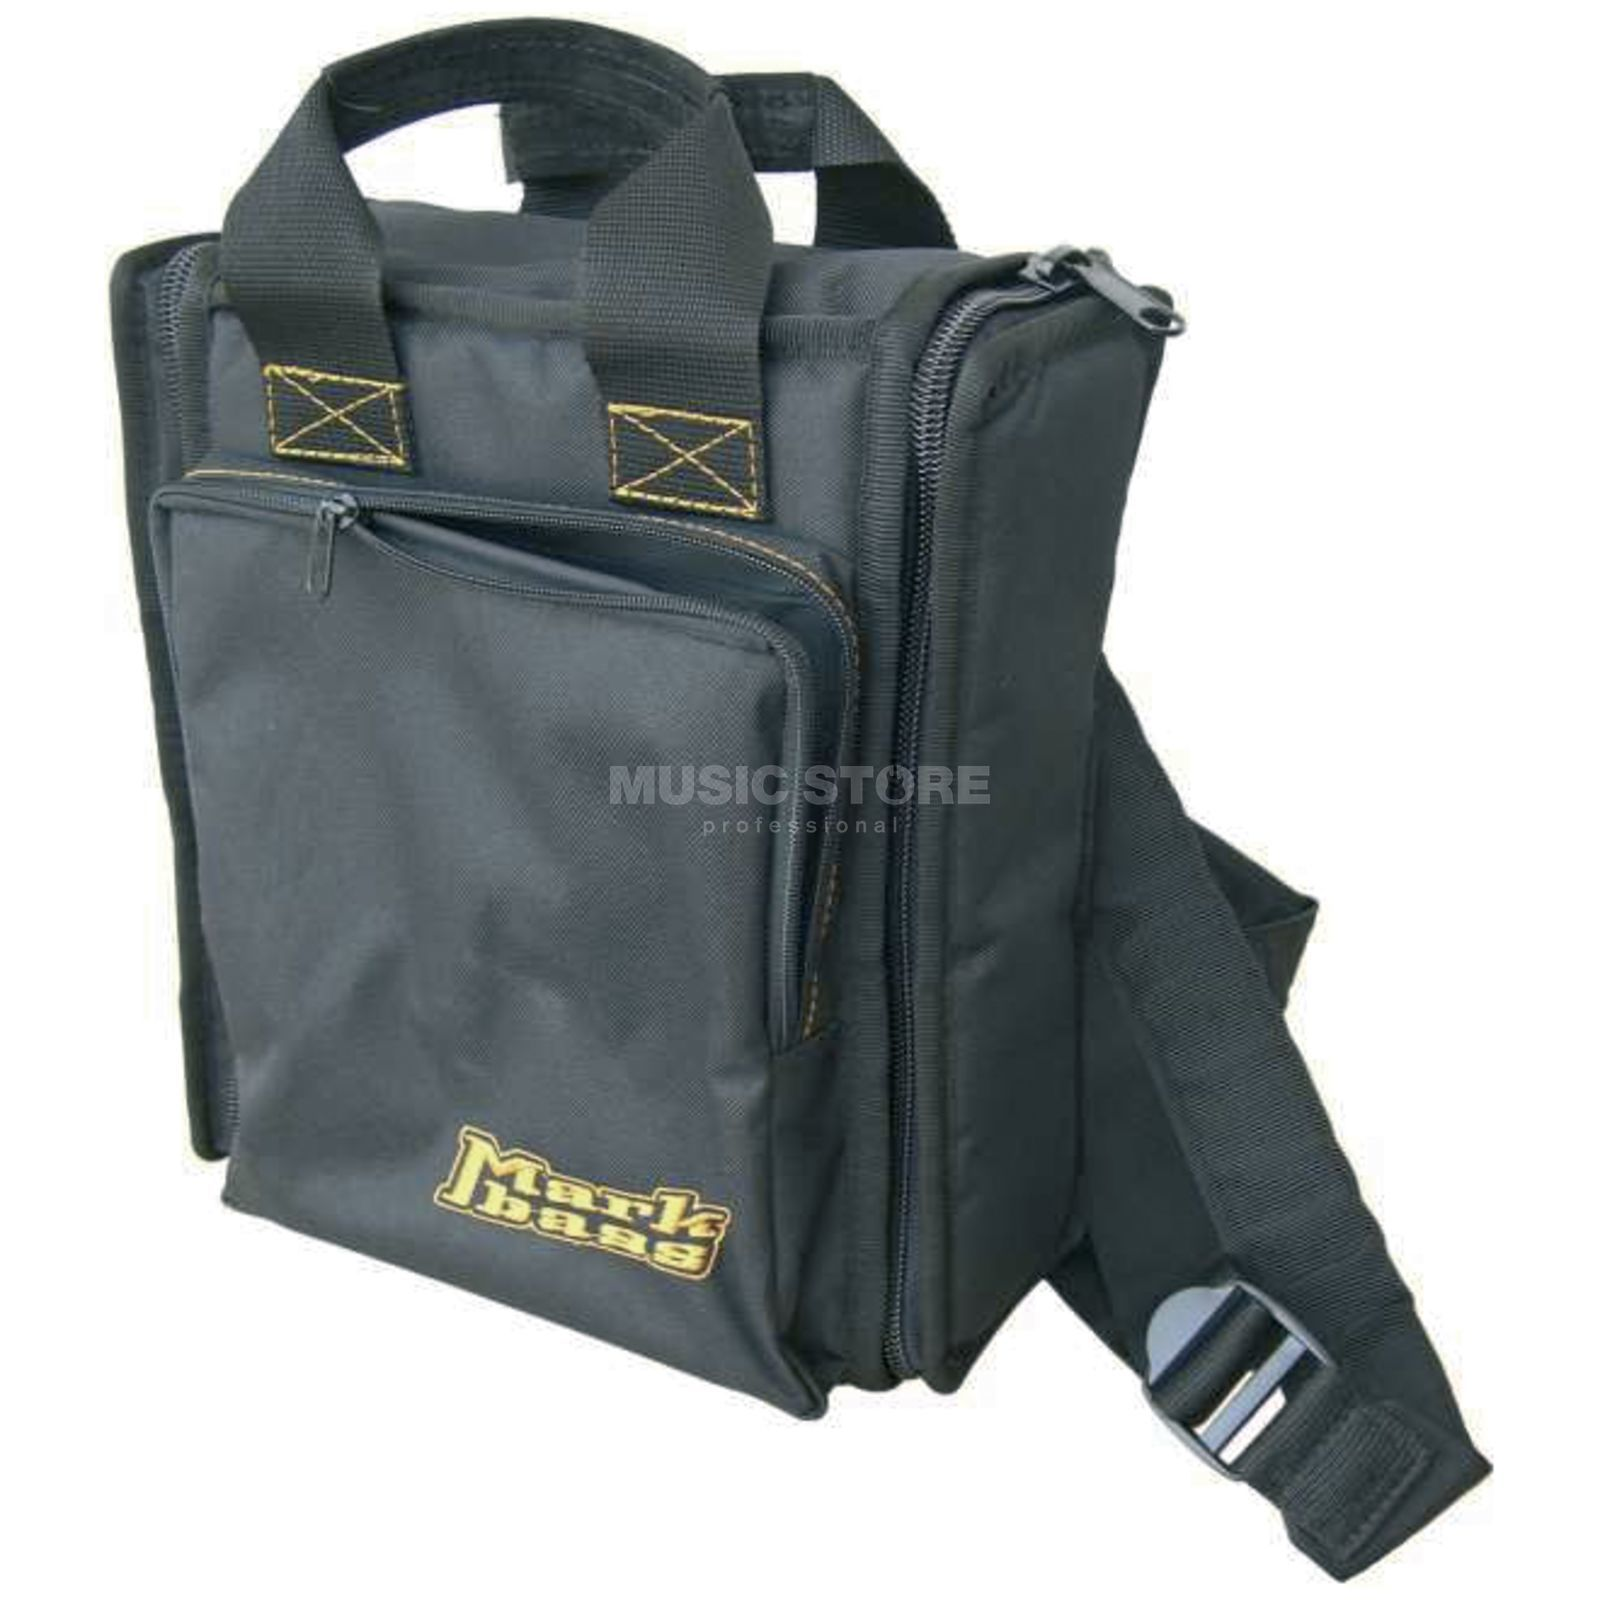 Mark Bass Amp Bag Large für SA450/SD800/TA501/TA503/R5 Product Image